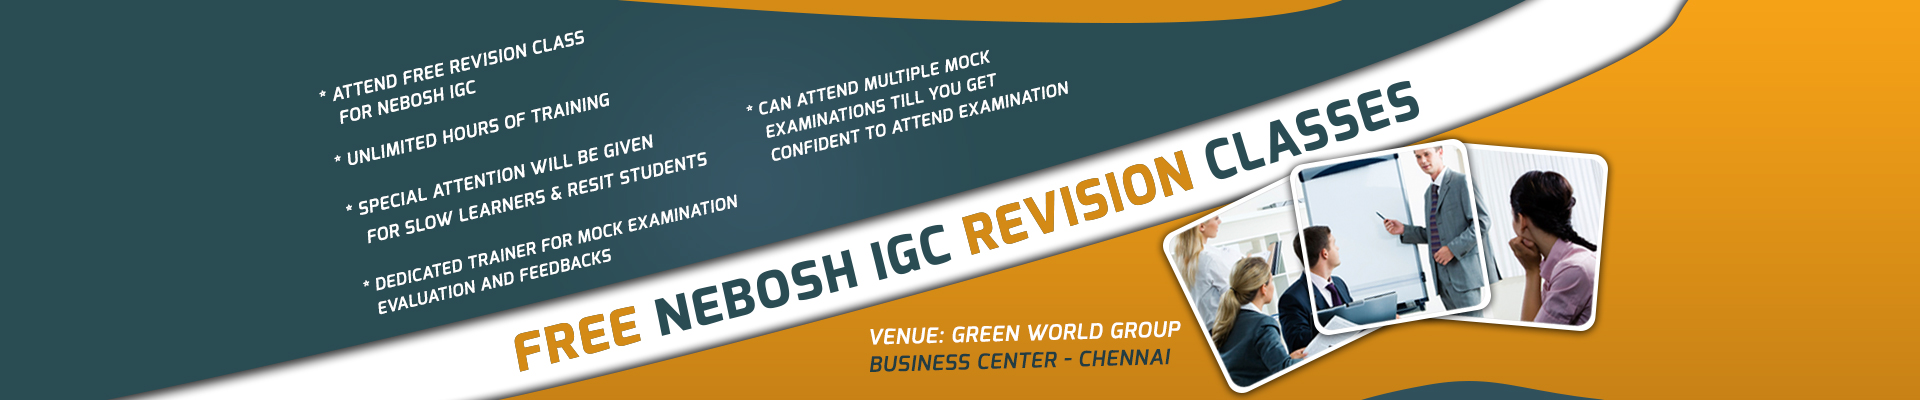 Free_revision_class_banner